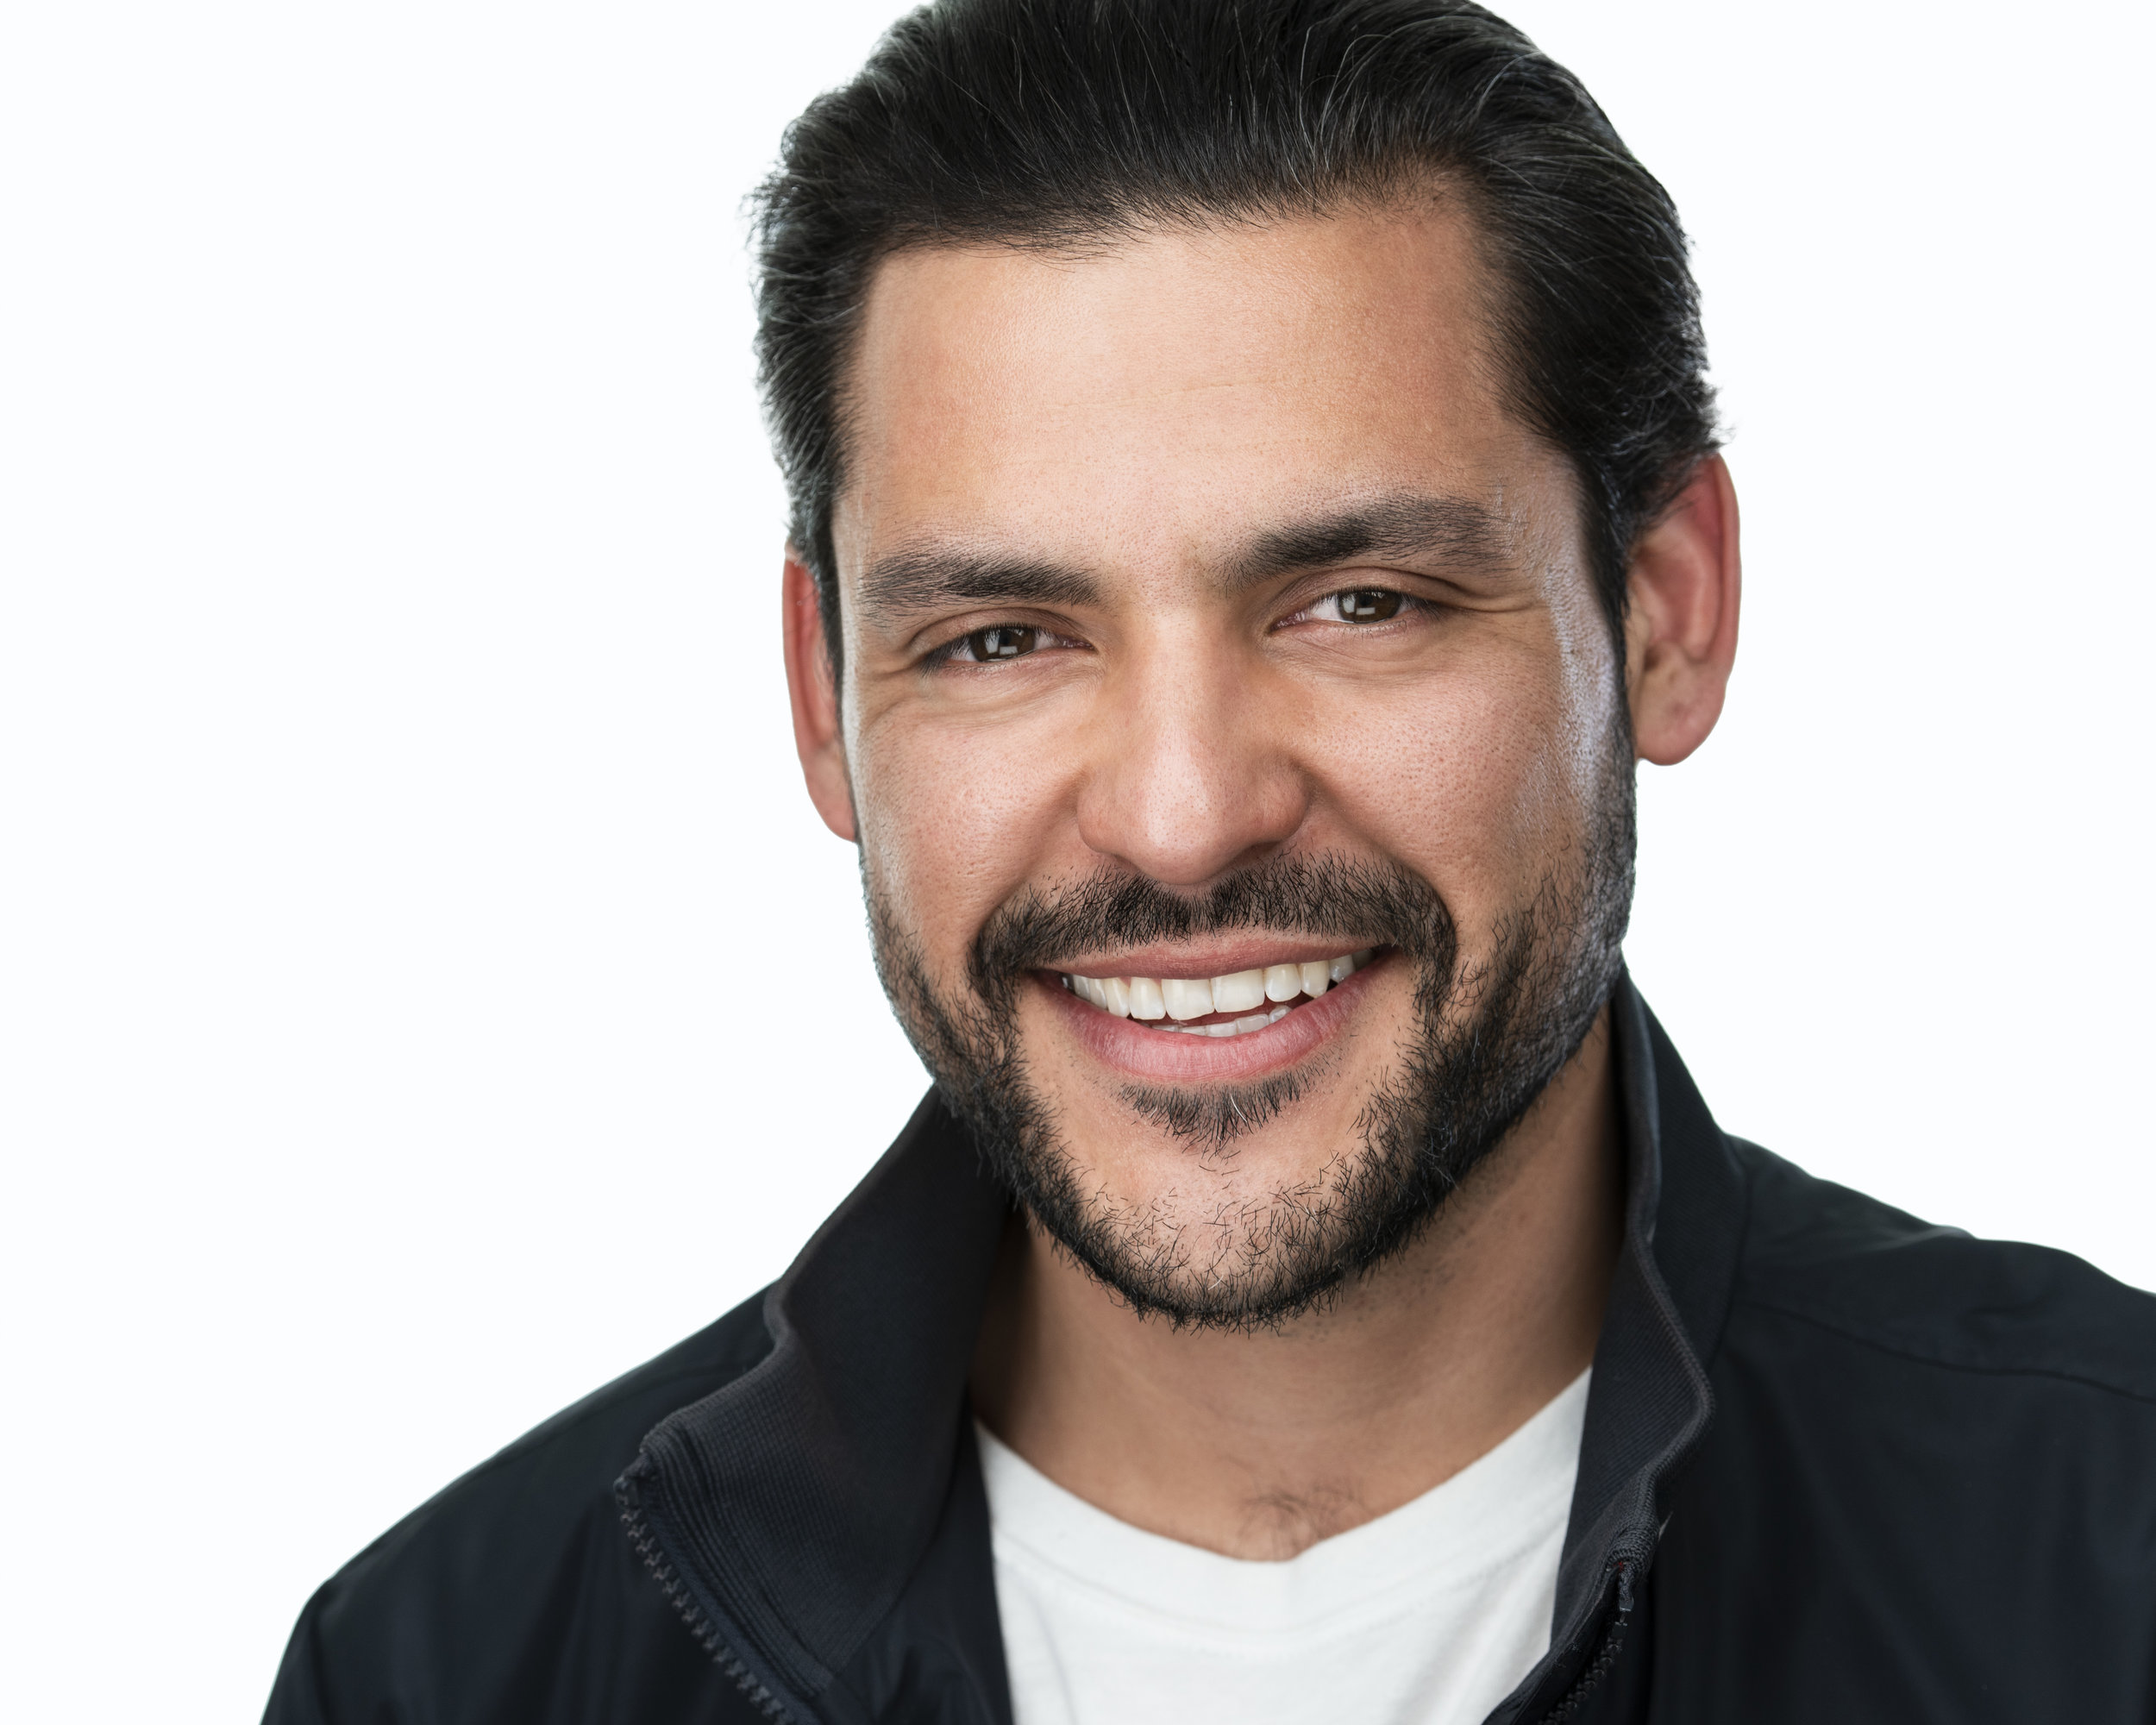 """""""Working with Lisa was a blast. She makes taking headshots so effortless. She keeps the mood funny and light."""" - _ Kenneth Trujillo, actor"""